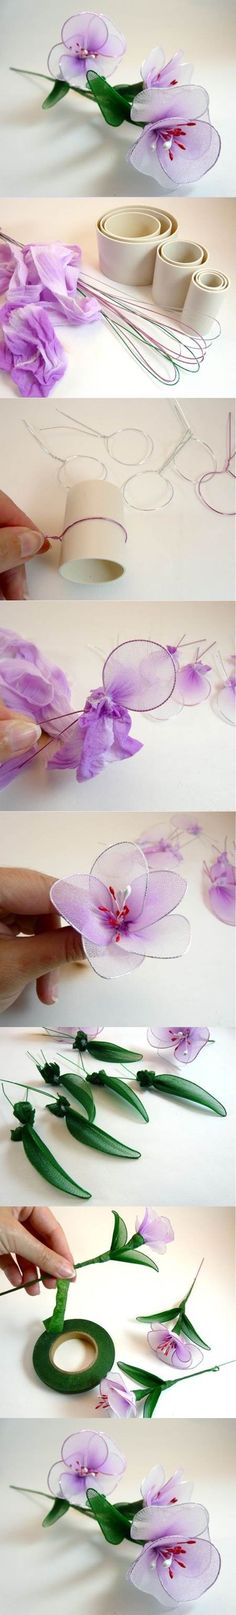 DIY Beautiful Nylon Flowers